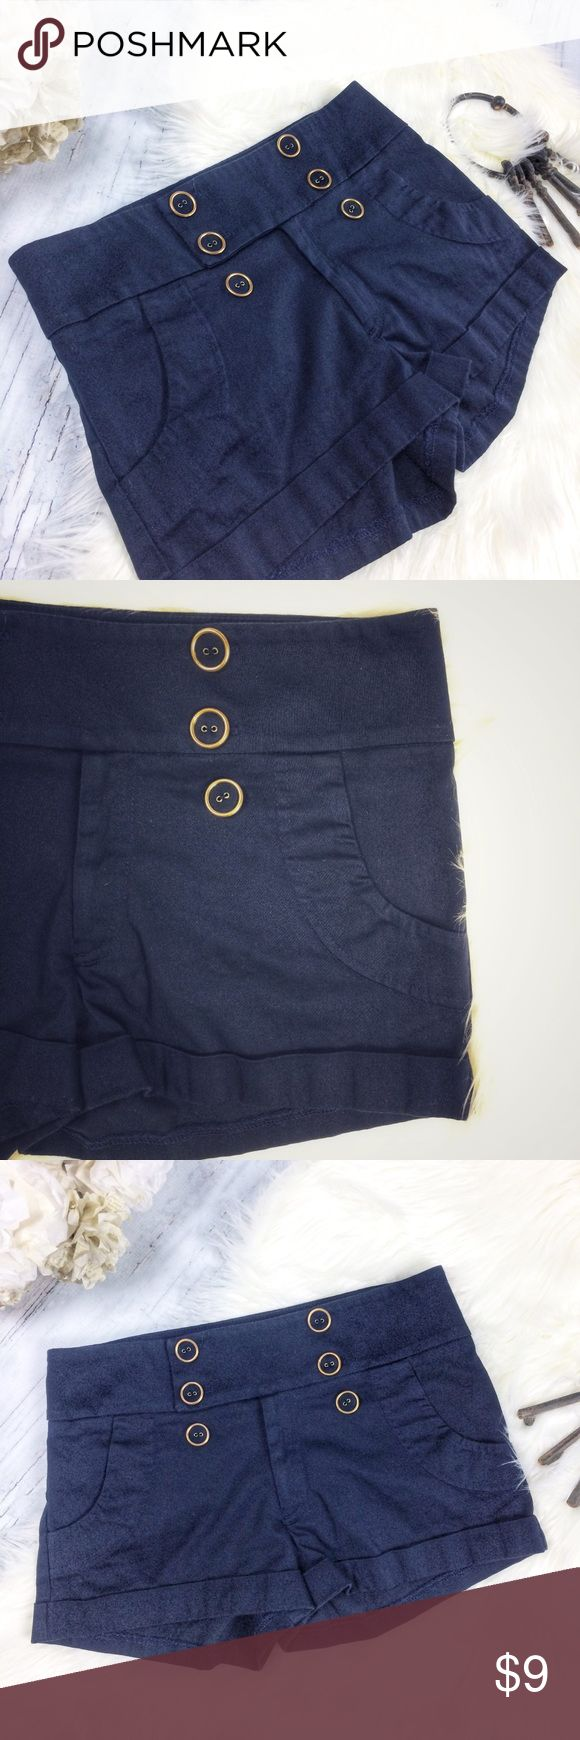 """AQUA Navy Shorts Double Rows Gold Buttons Front M Navy blue shorts with rolled cuff hem and double gold buttons up front- super cute! Wide waist band, zipper and hook closure. Faux pockets in front, shaping darts in back.  Good used condition!  Waist: 31 Length of side seam: 11"""" Rise: 9 3/4"""" Inseam: 2 1/4""""  Check out my other items! Aqua Shorts"""